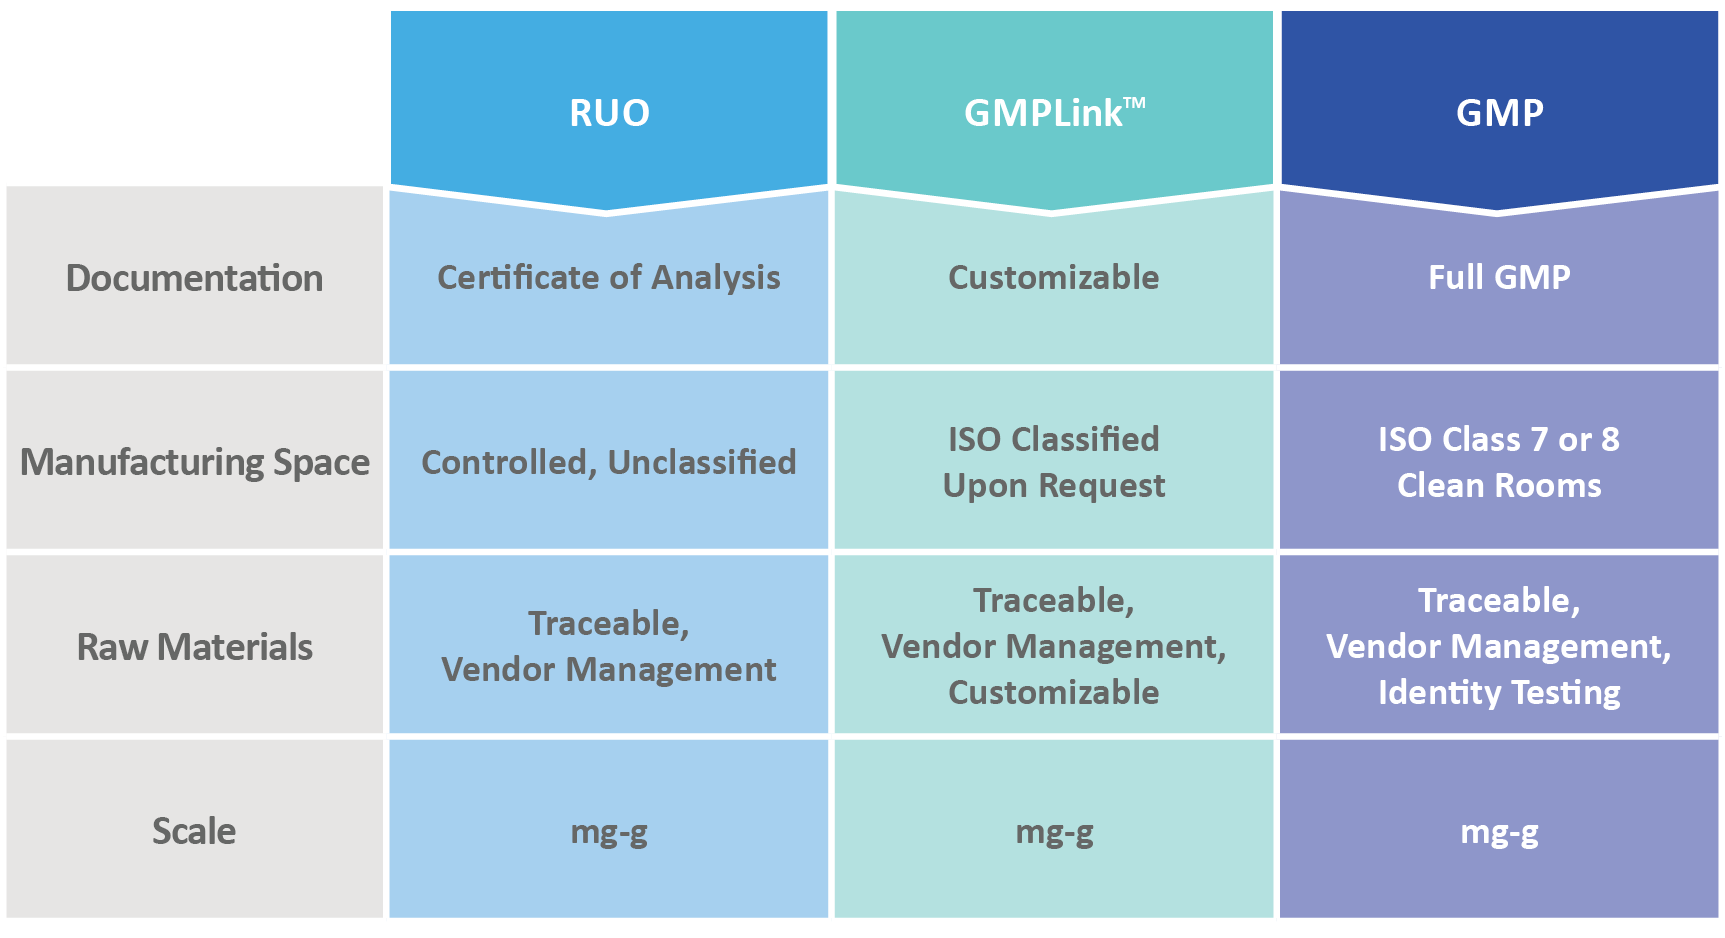 Chart to show differences and similarities between research, GMPlink, and GMP grades of manufacturing.